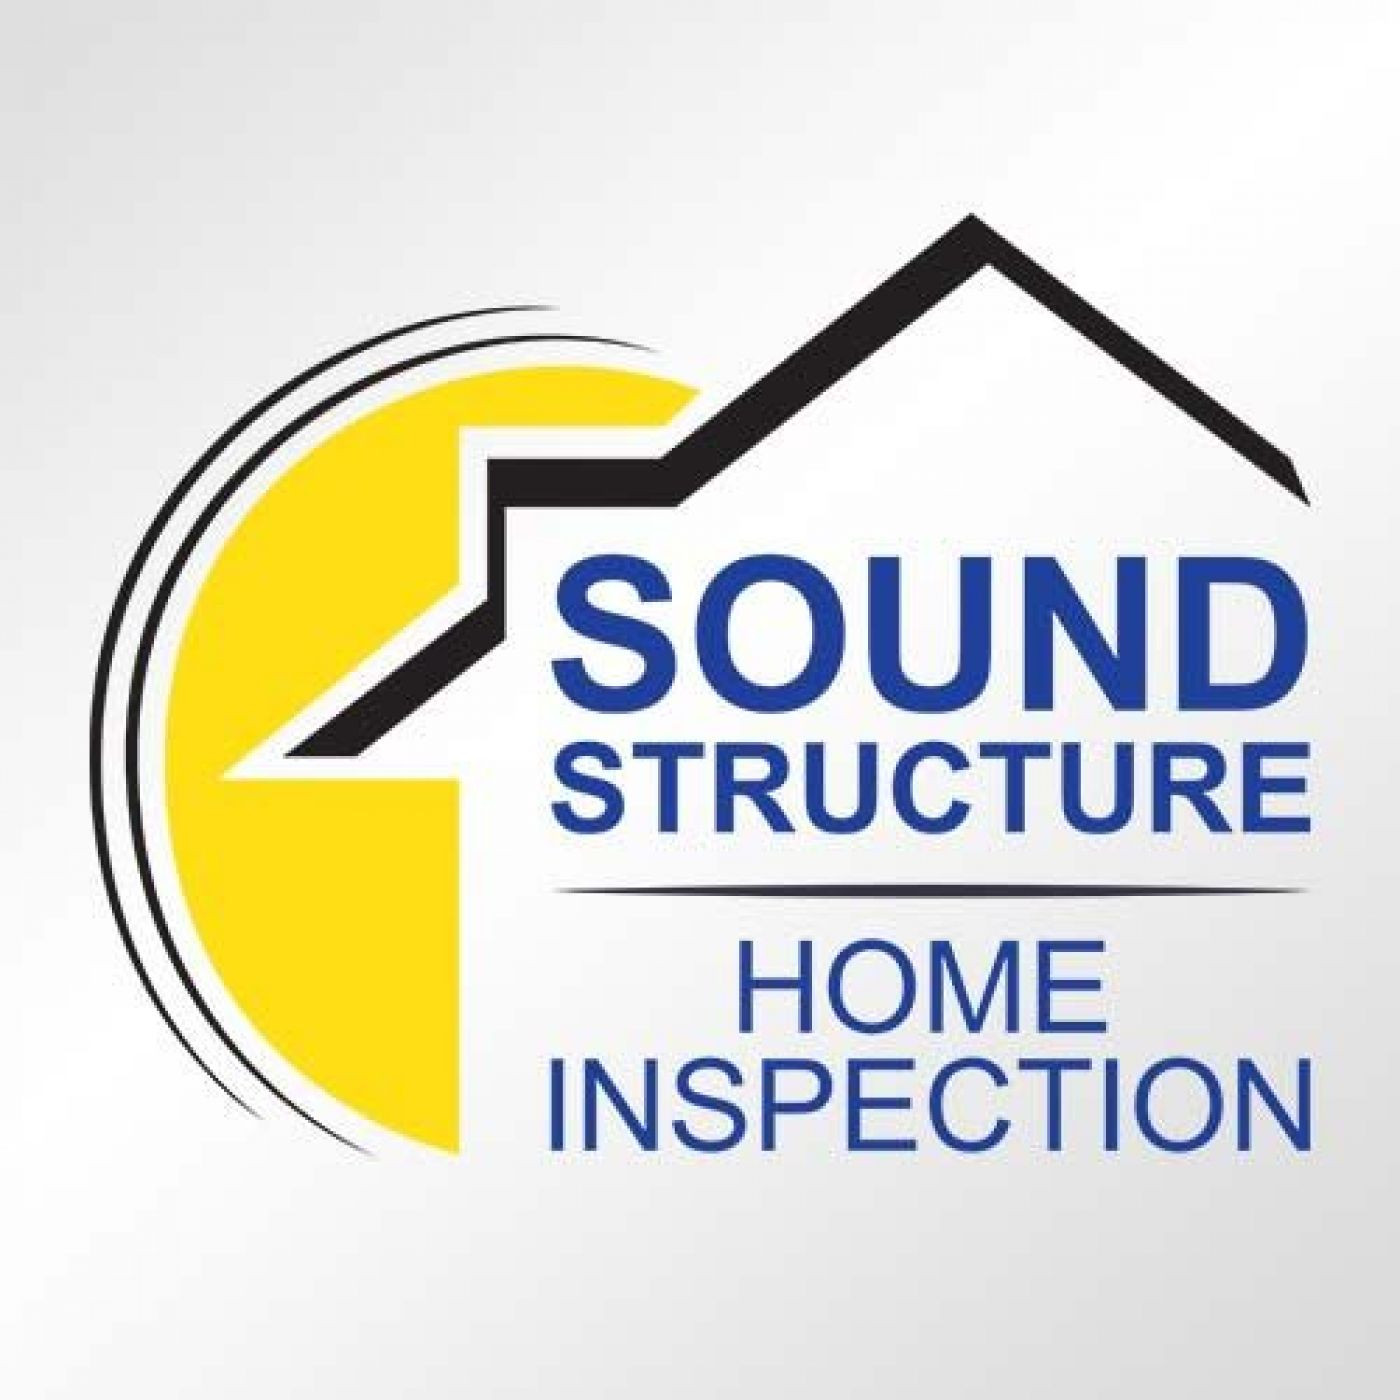 Welcome: Sound Structure Home Inspection